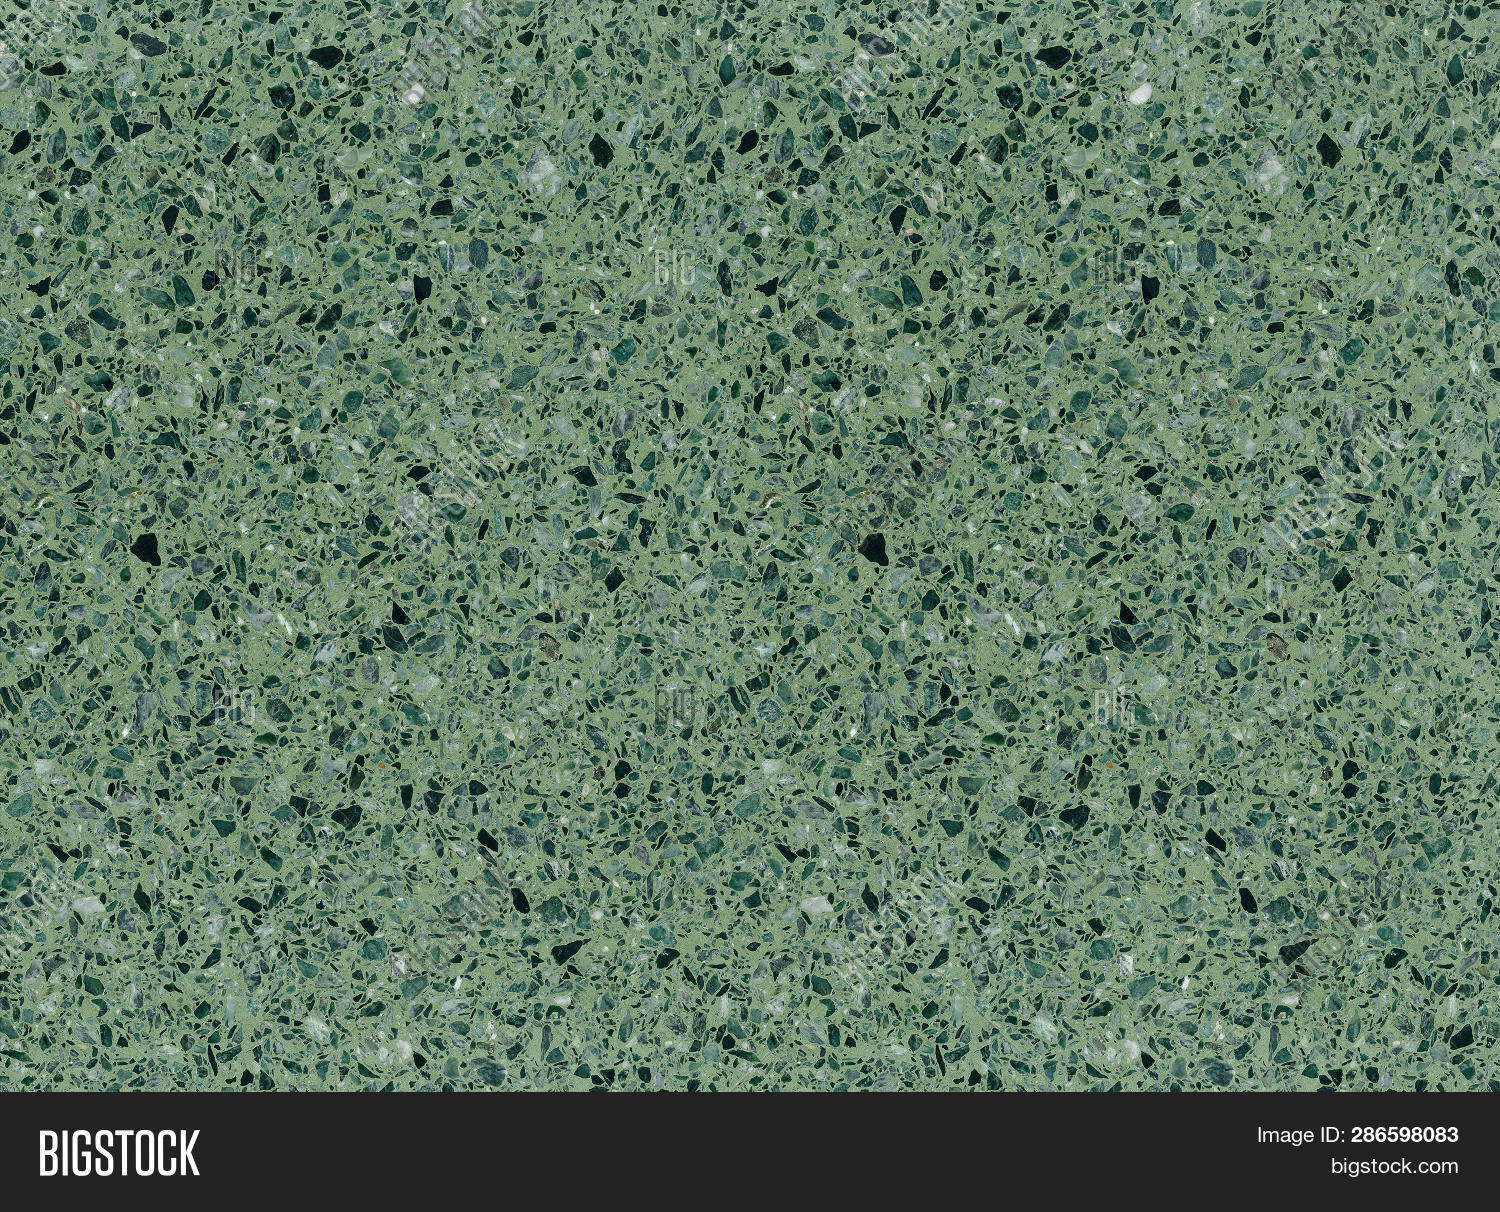 Green Mottled Terrazzo Image Photo Free Trial Bigstock